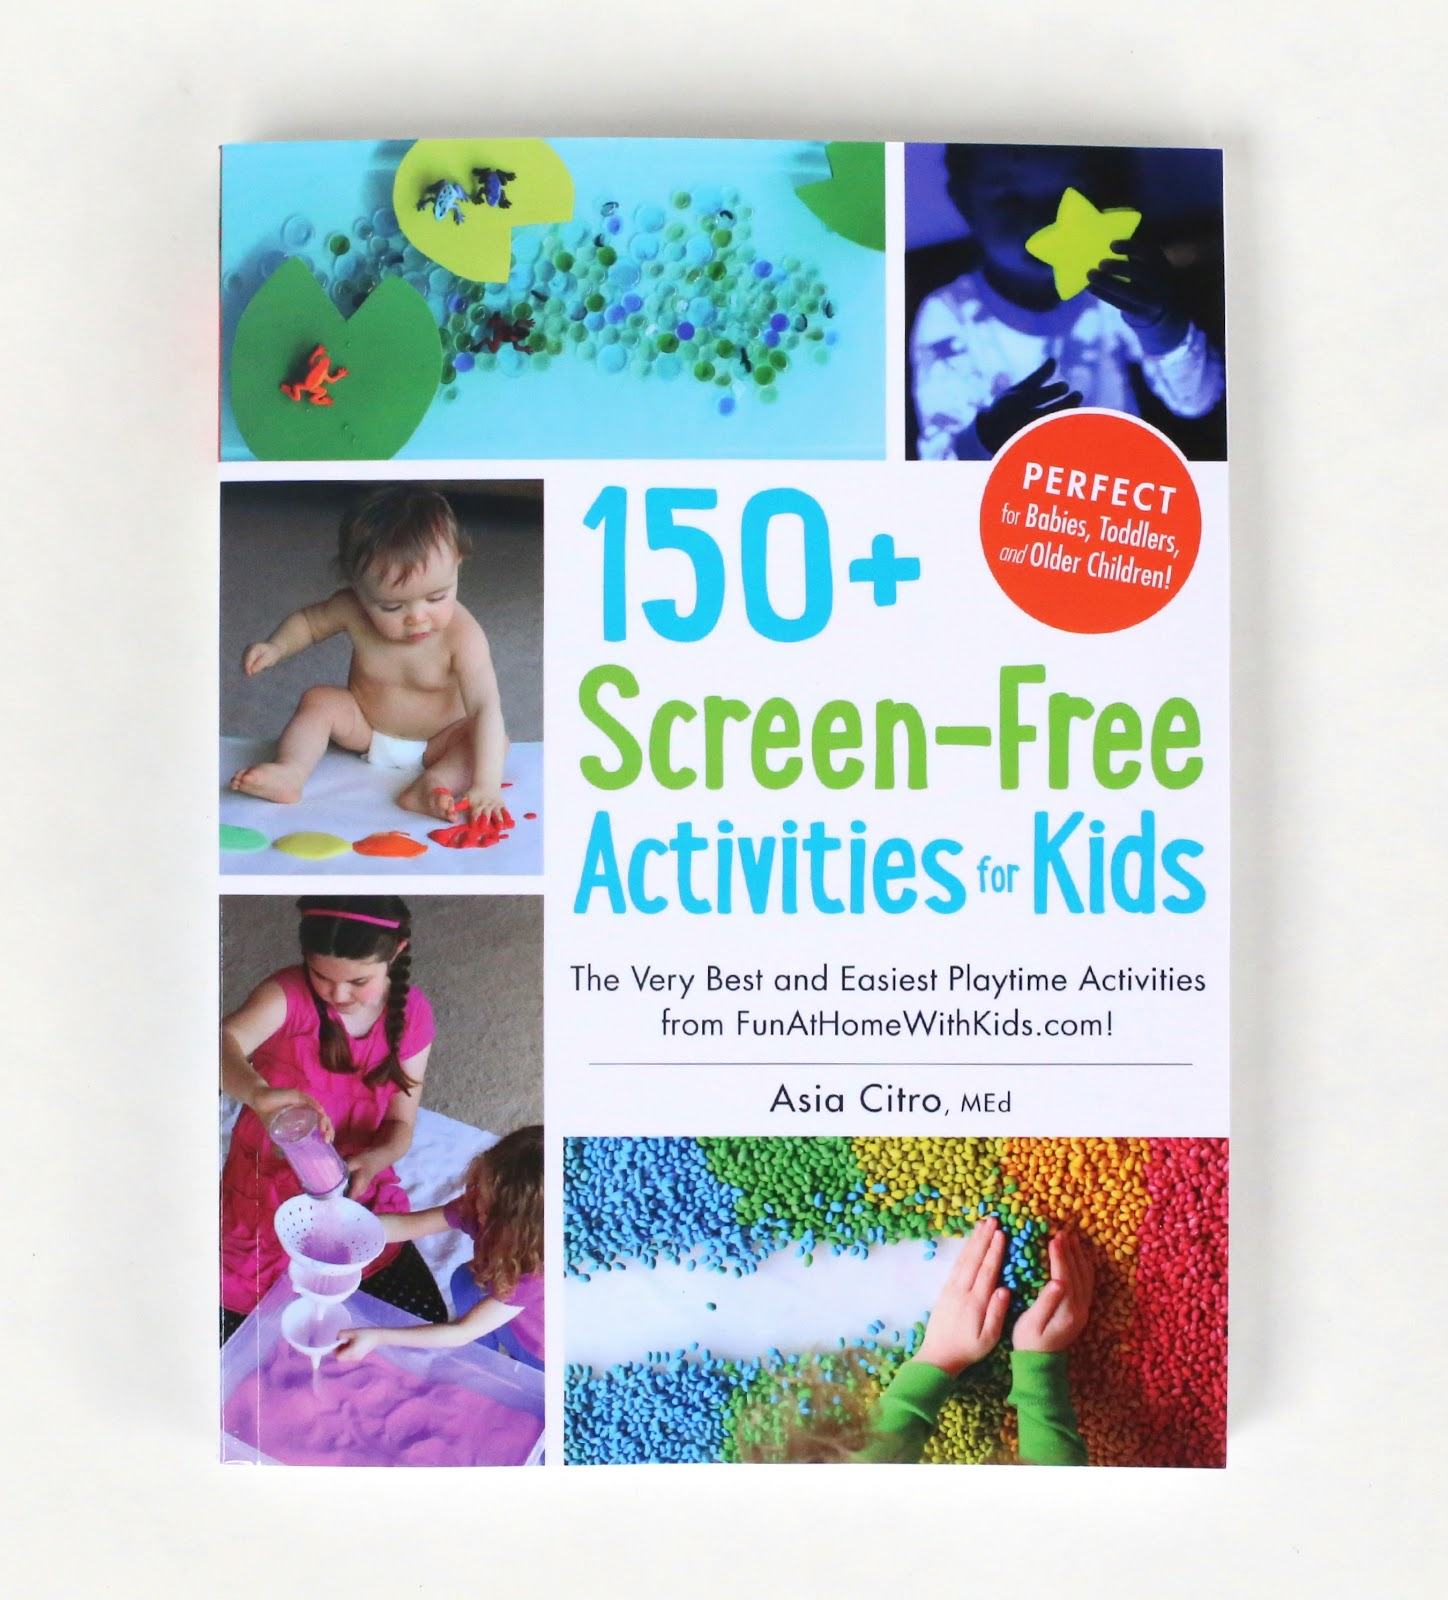 The 150+ Screen-Free Activities for Kids book has 72 activities for babies!  It would make a great creative baby shower gift.